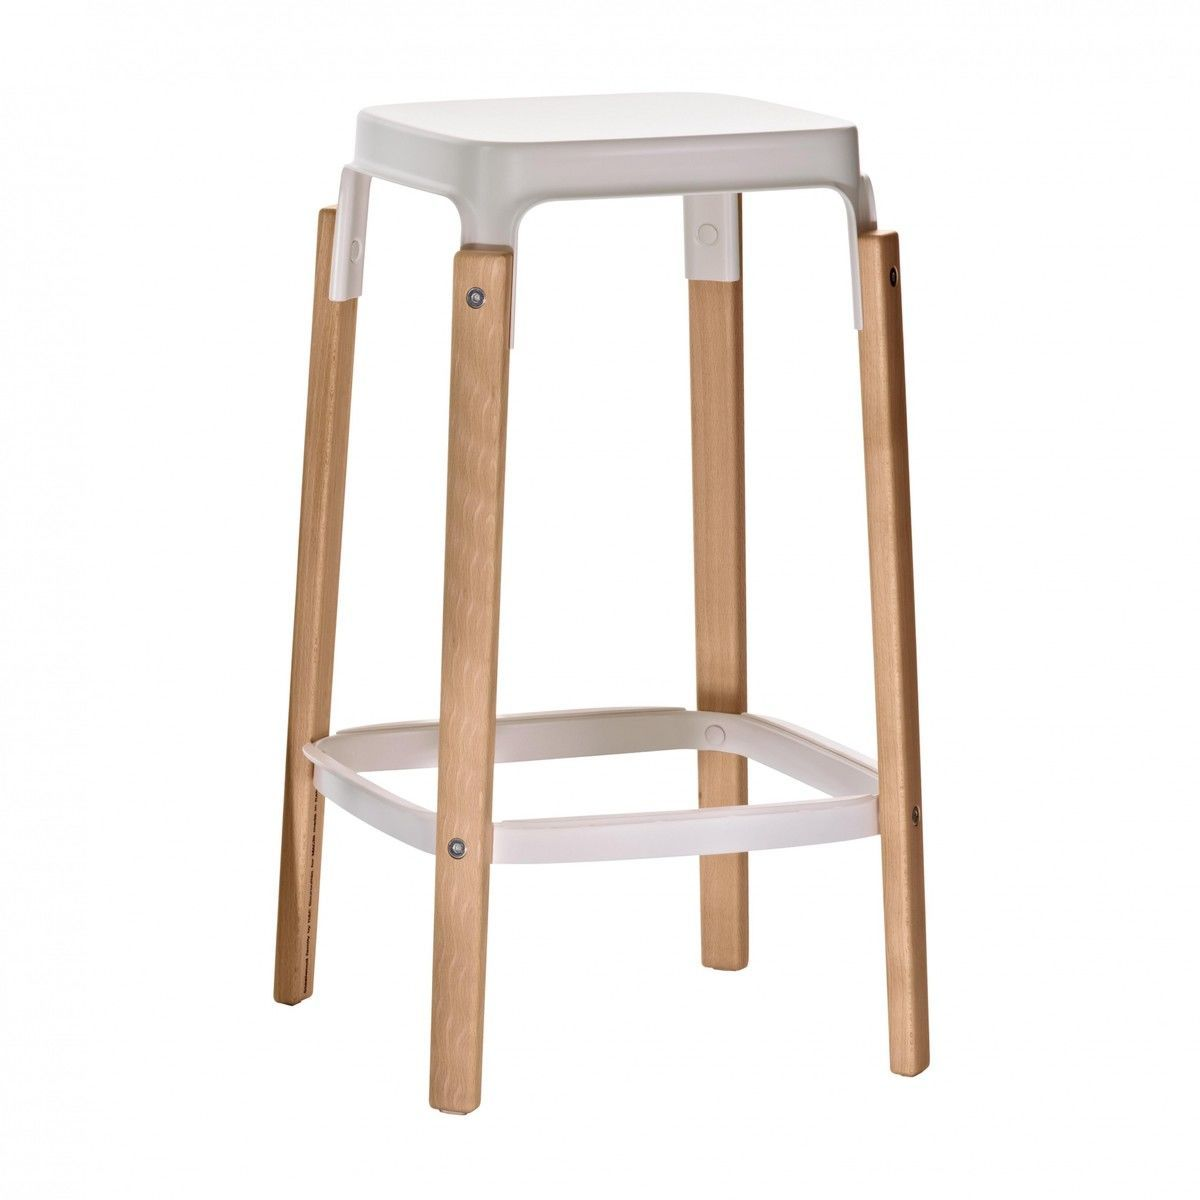 Steelwood stool tabouret de bar 68cm magis for Magis steelwood